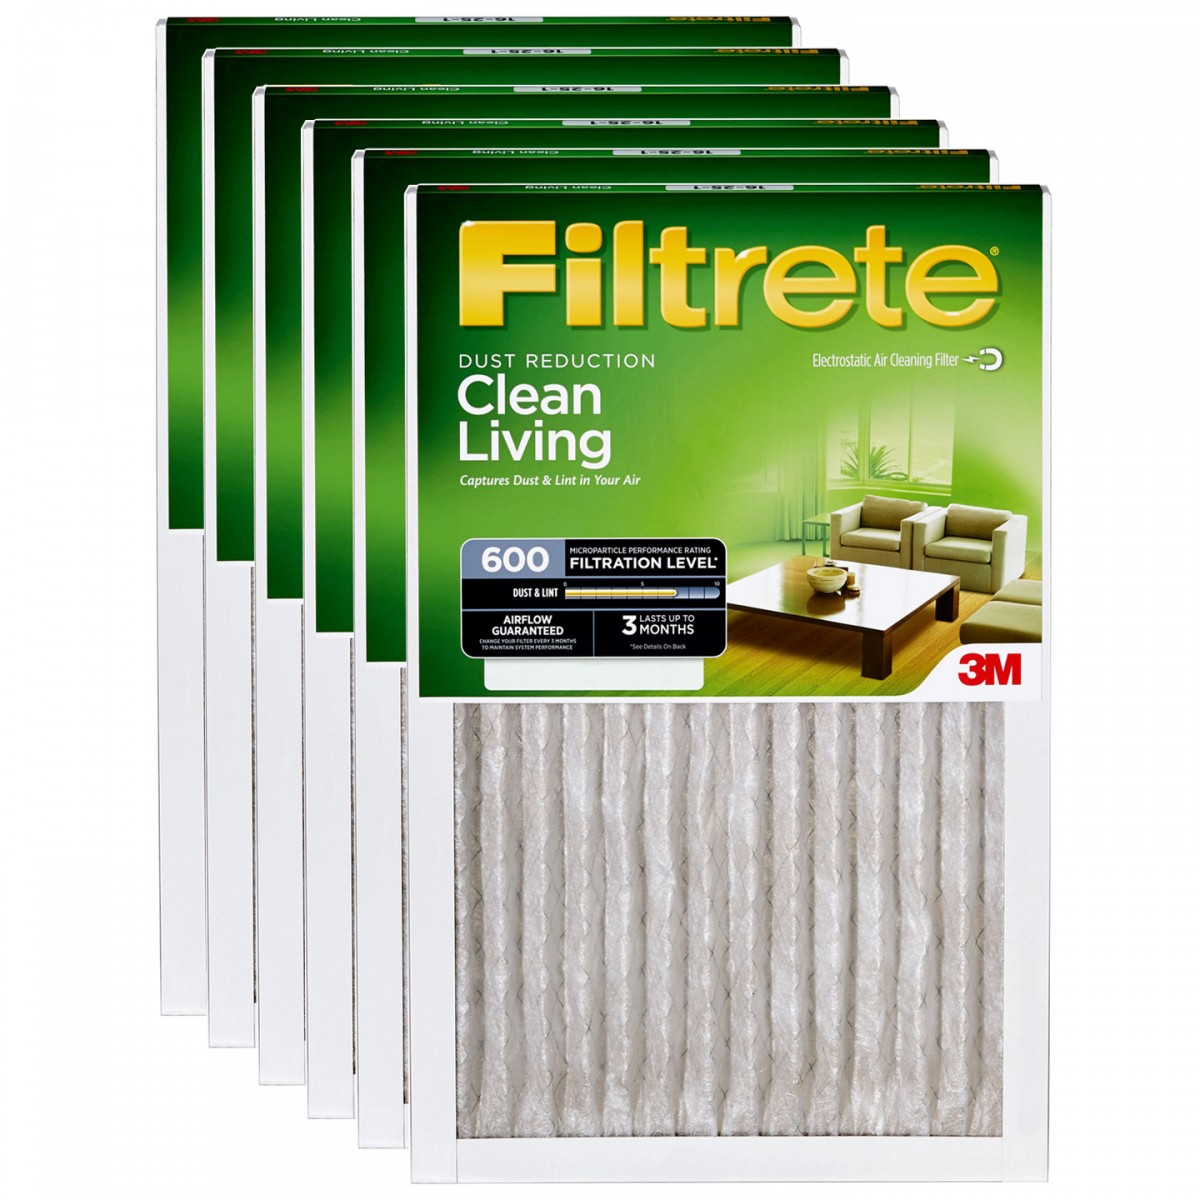 10x20x1 3M Filtrete Dust and Pollen Filter (6-Pack) FILTRETE_DUST_10x20x1_6_PACK